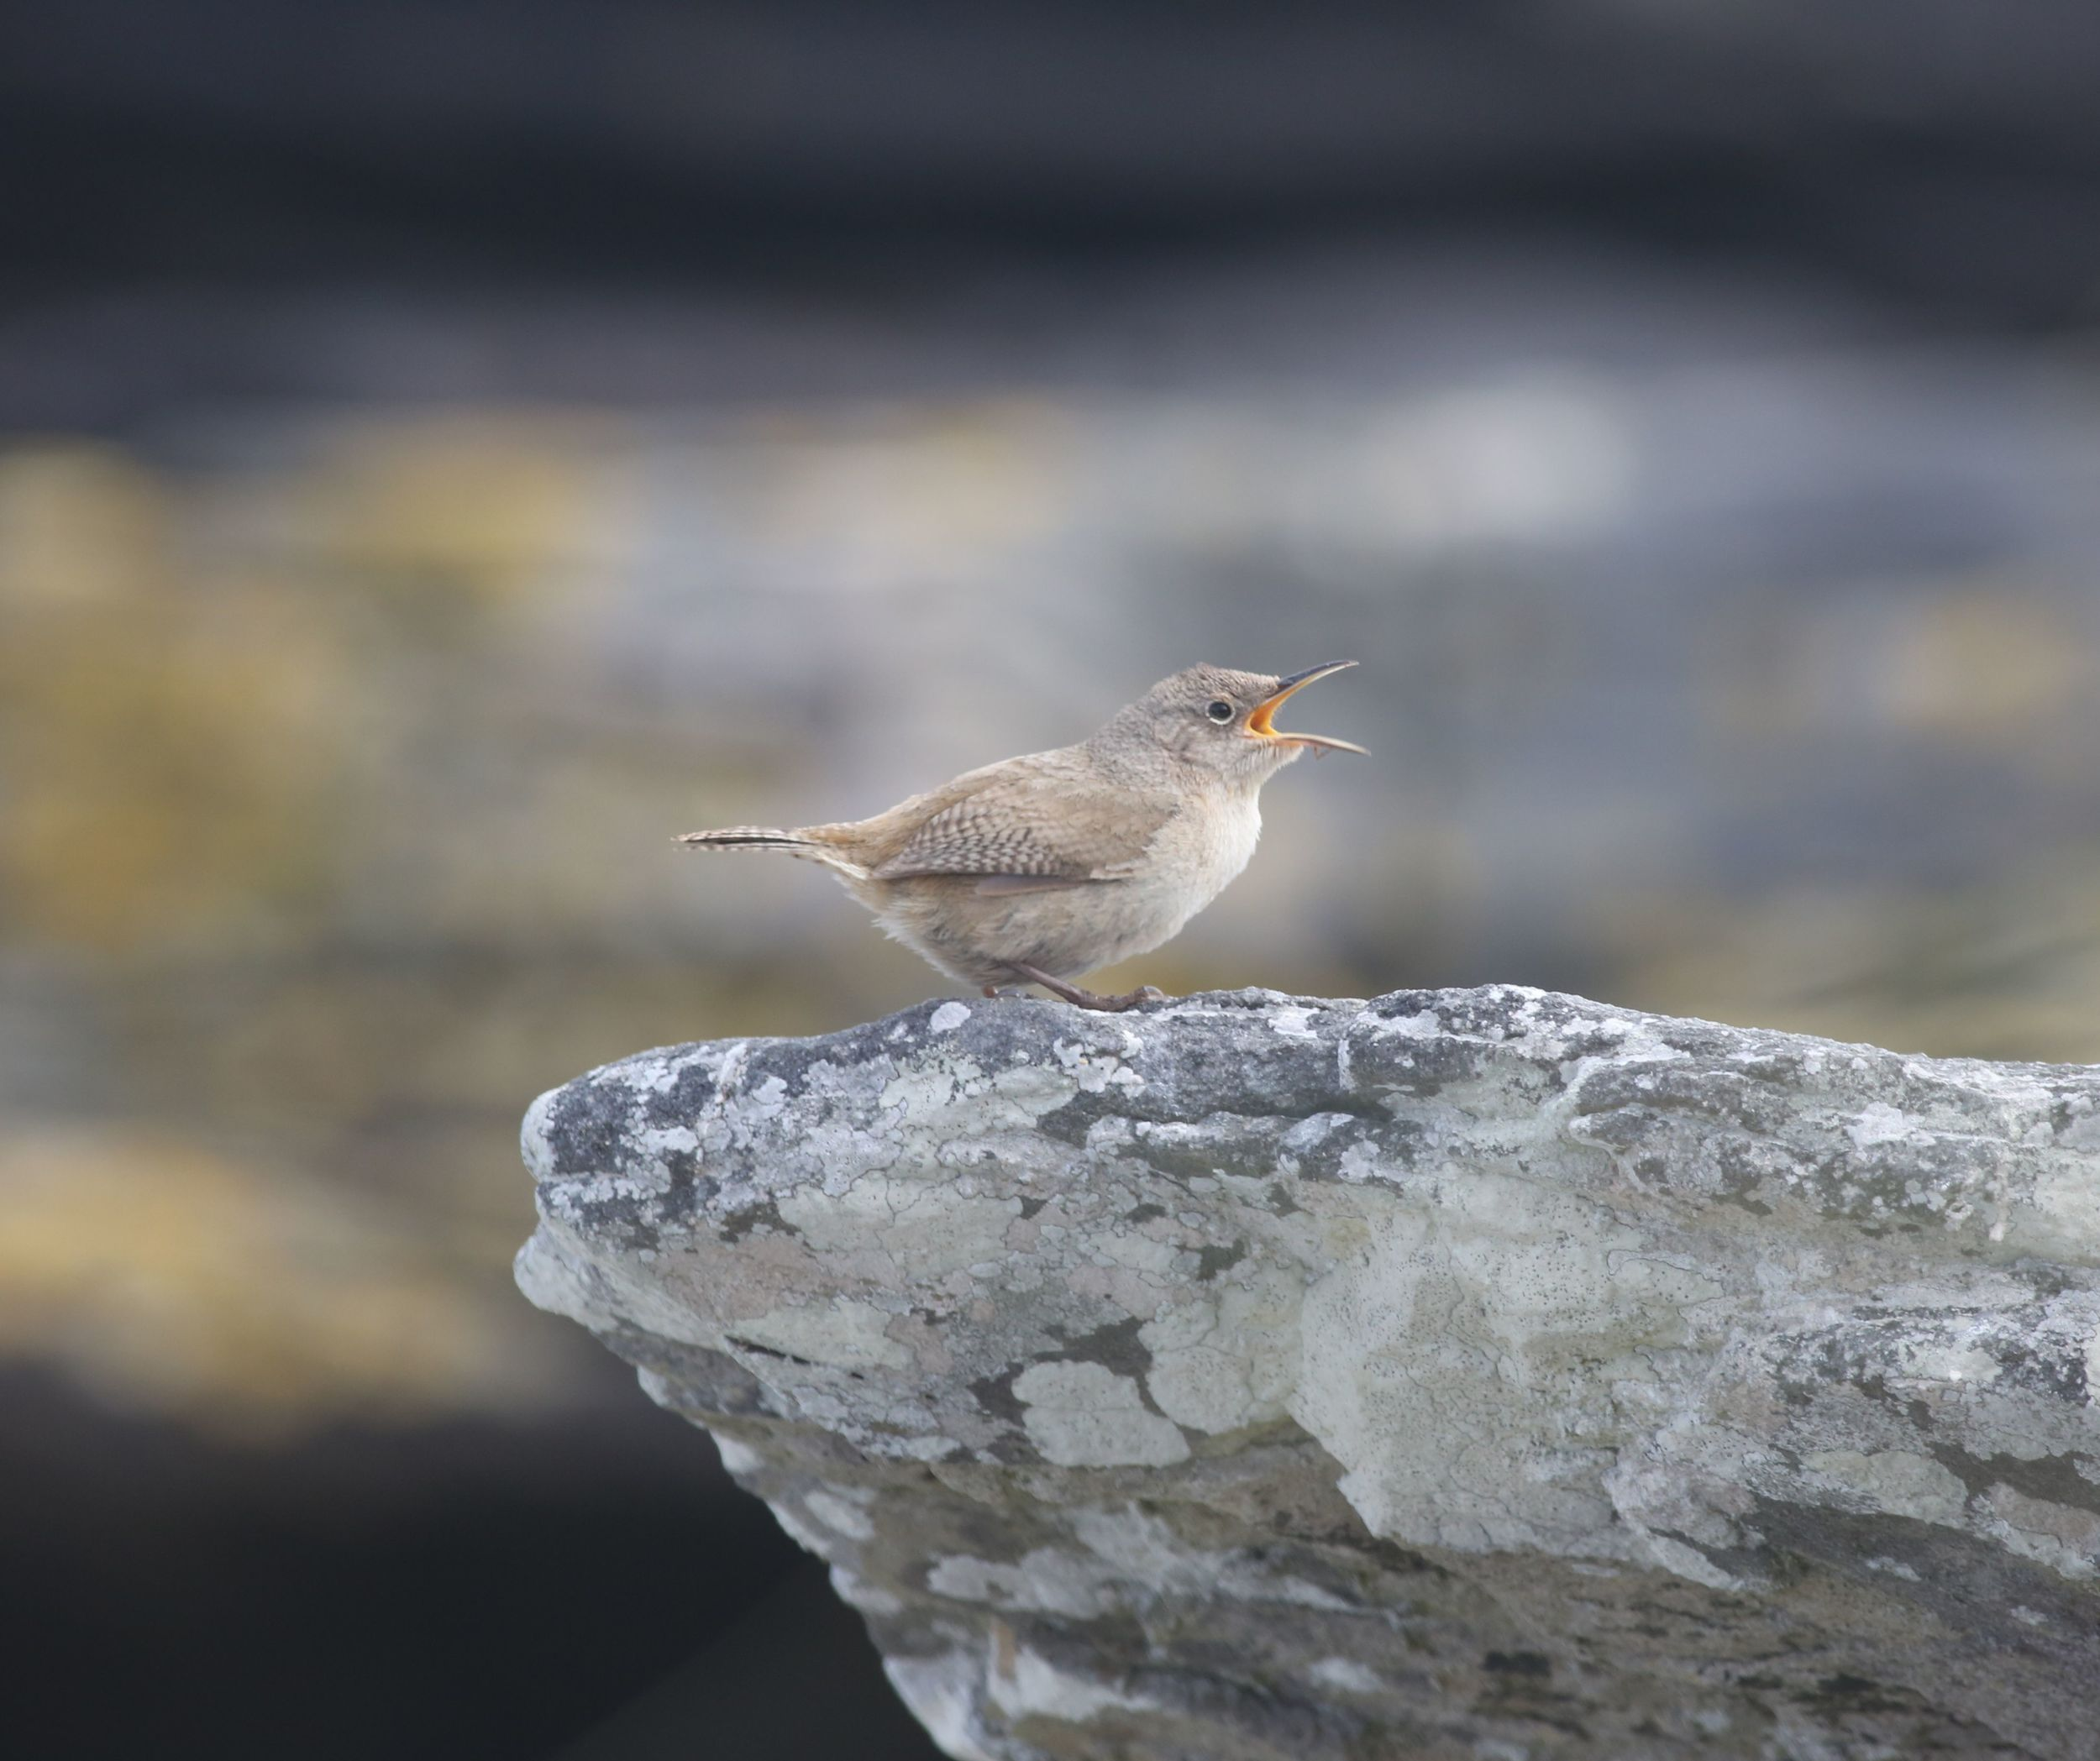 Filled with personality, the endearing Cobb's wren serenaded us when not zipping around hunting for insects and small crustaceans in the tidal zone.